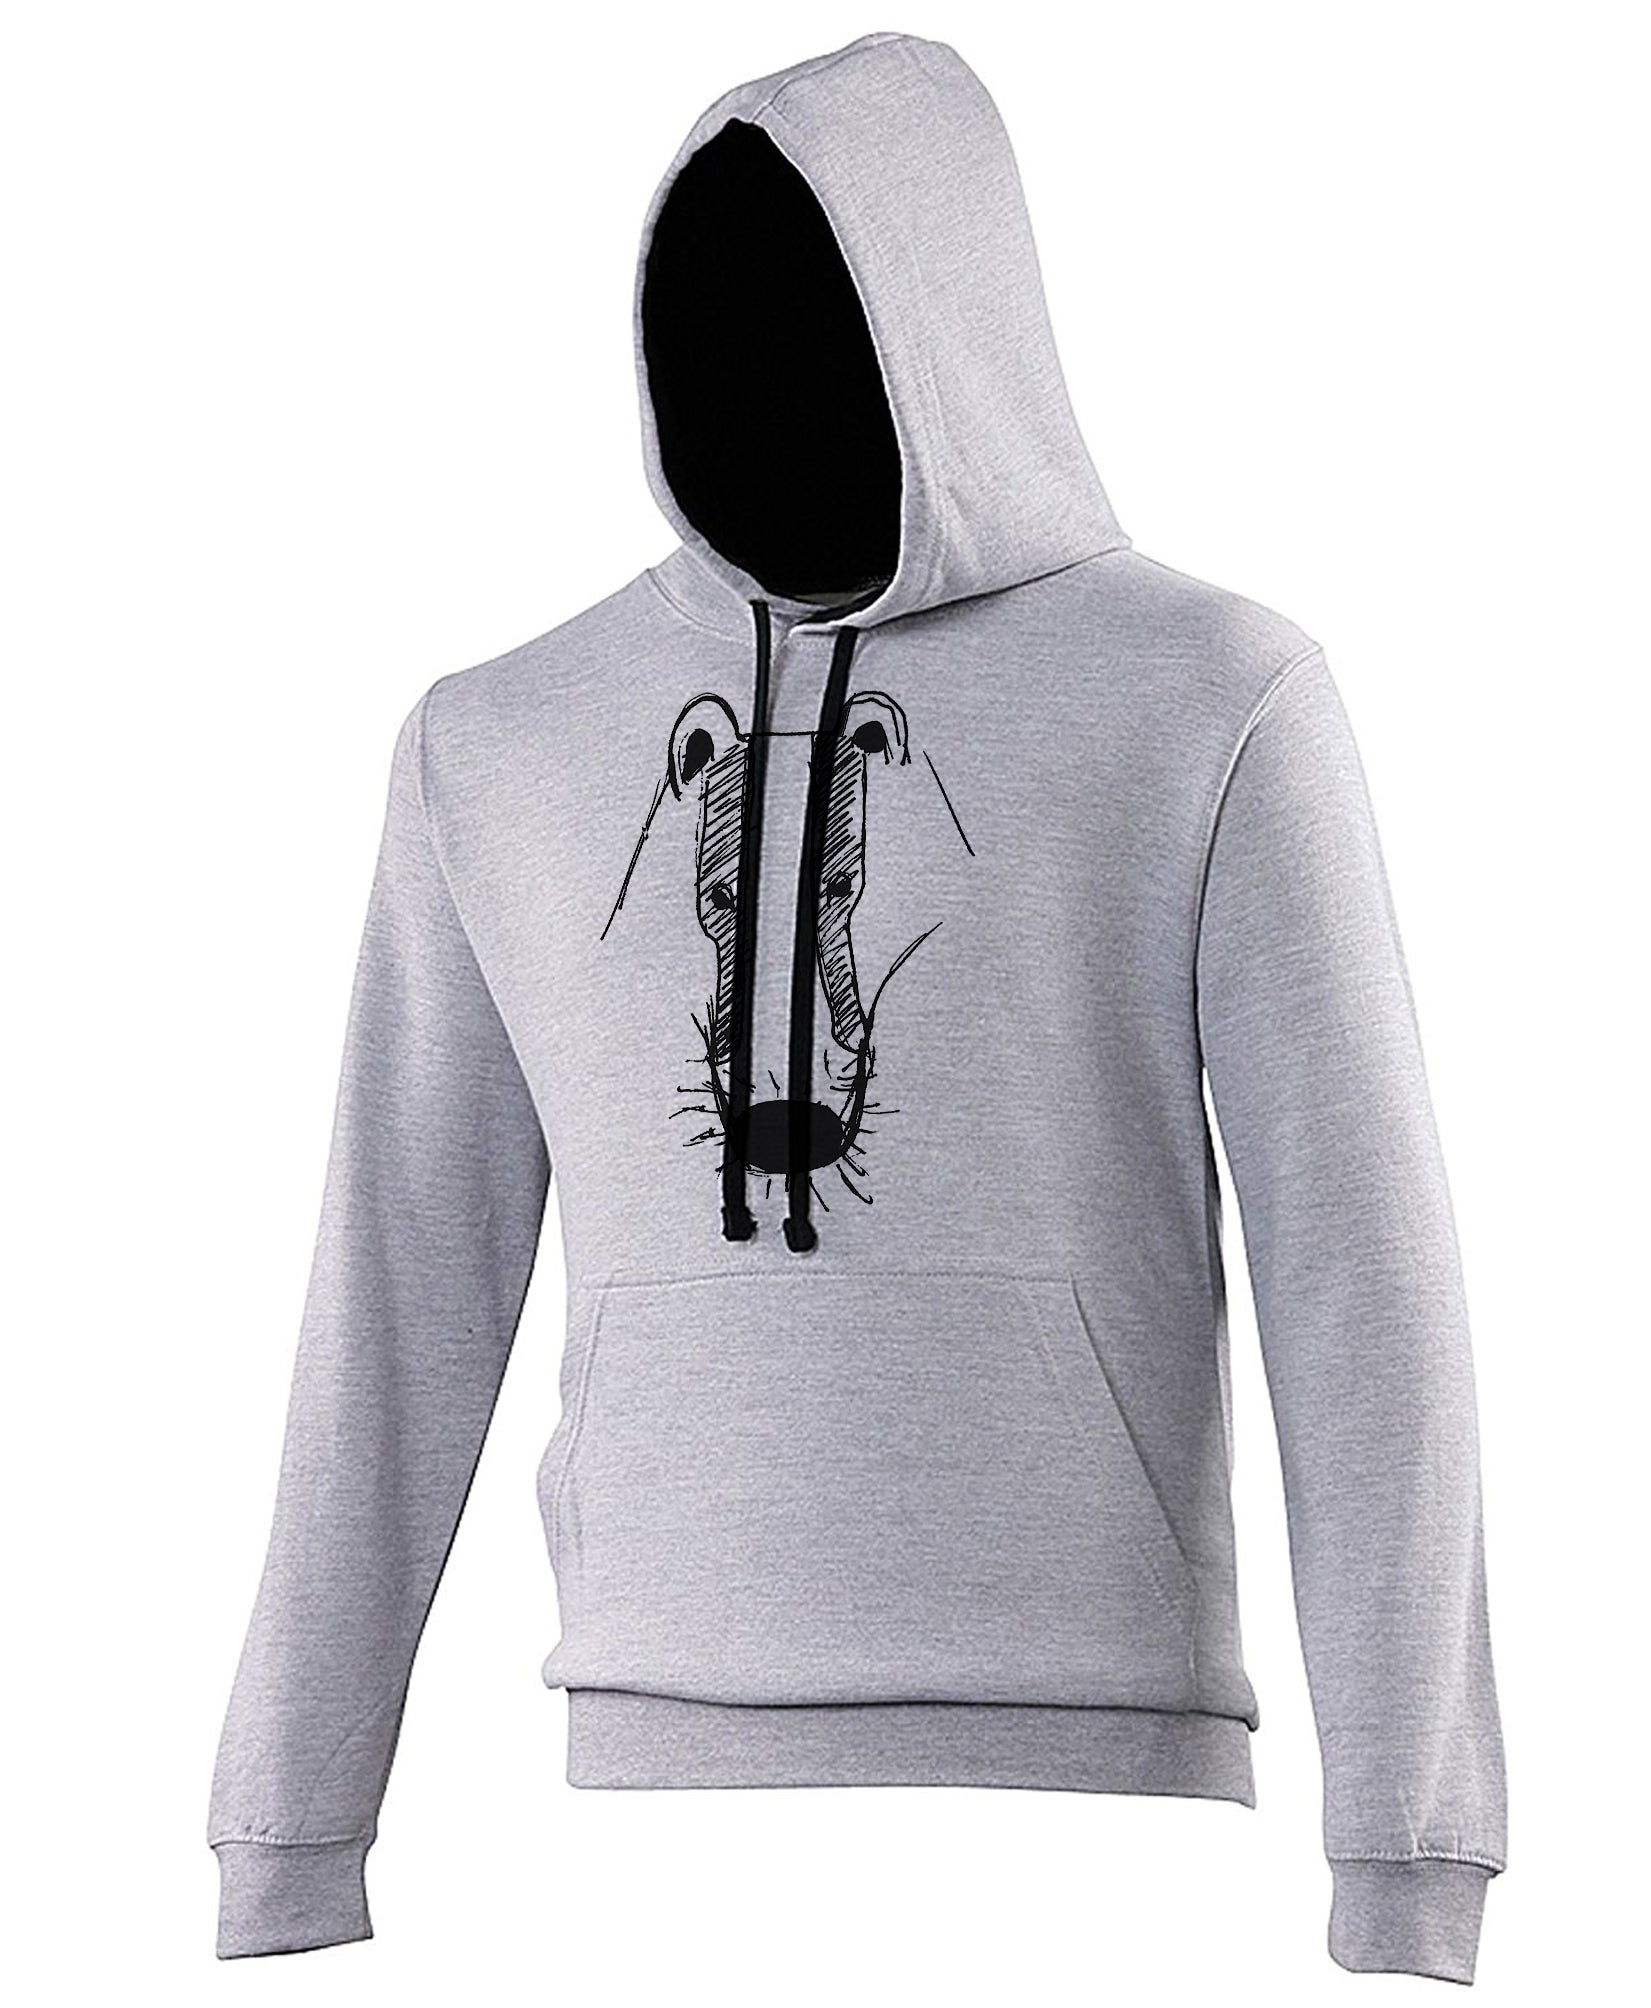 Badger hoodie, Grey/Black